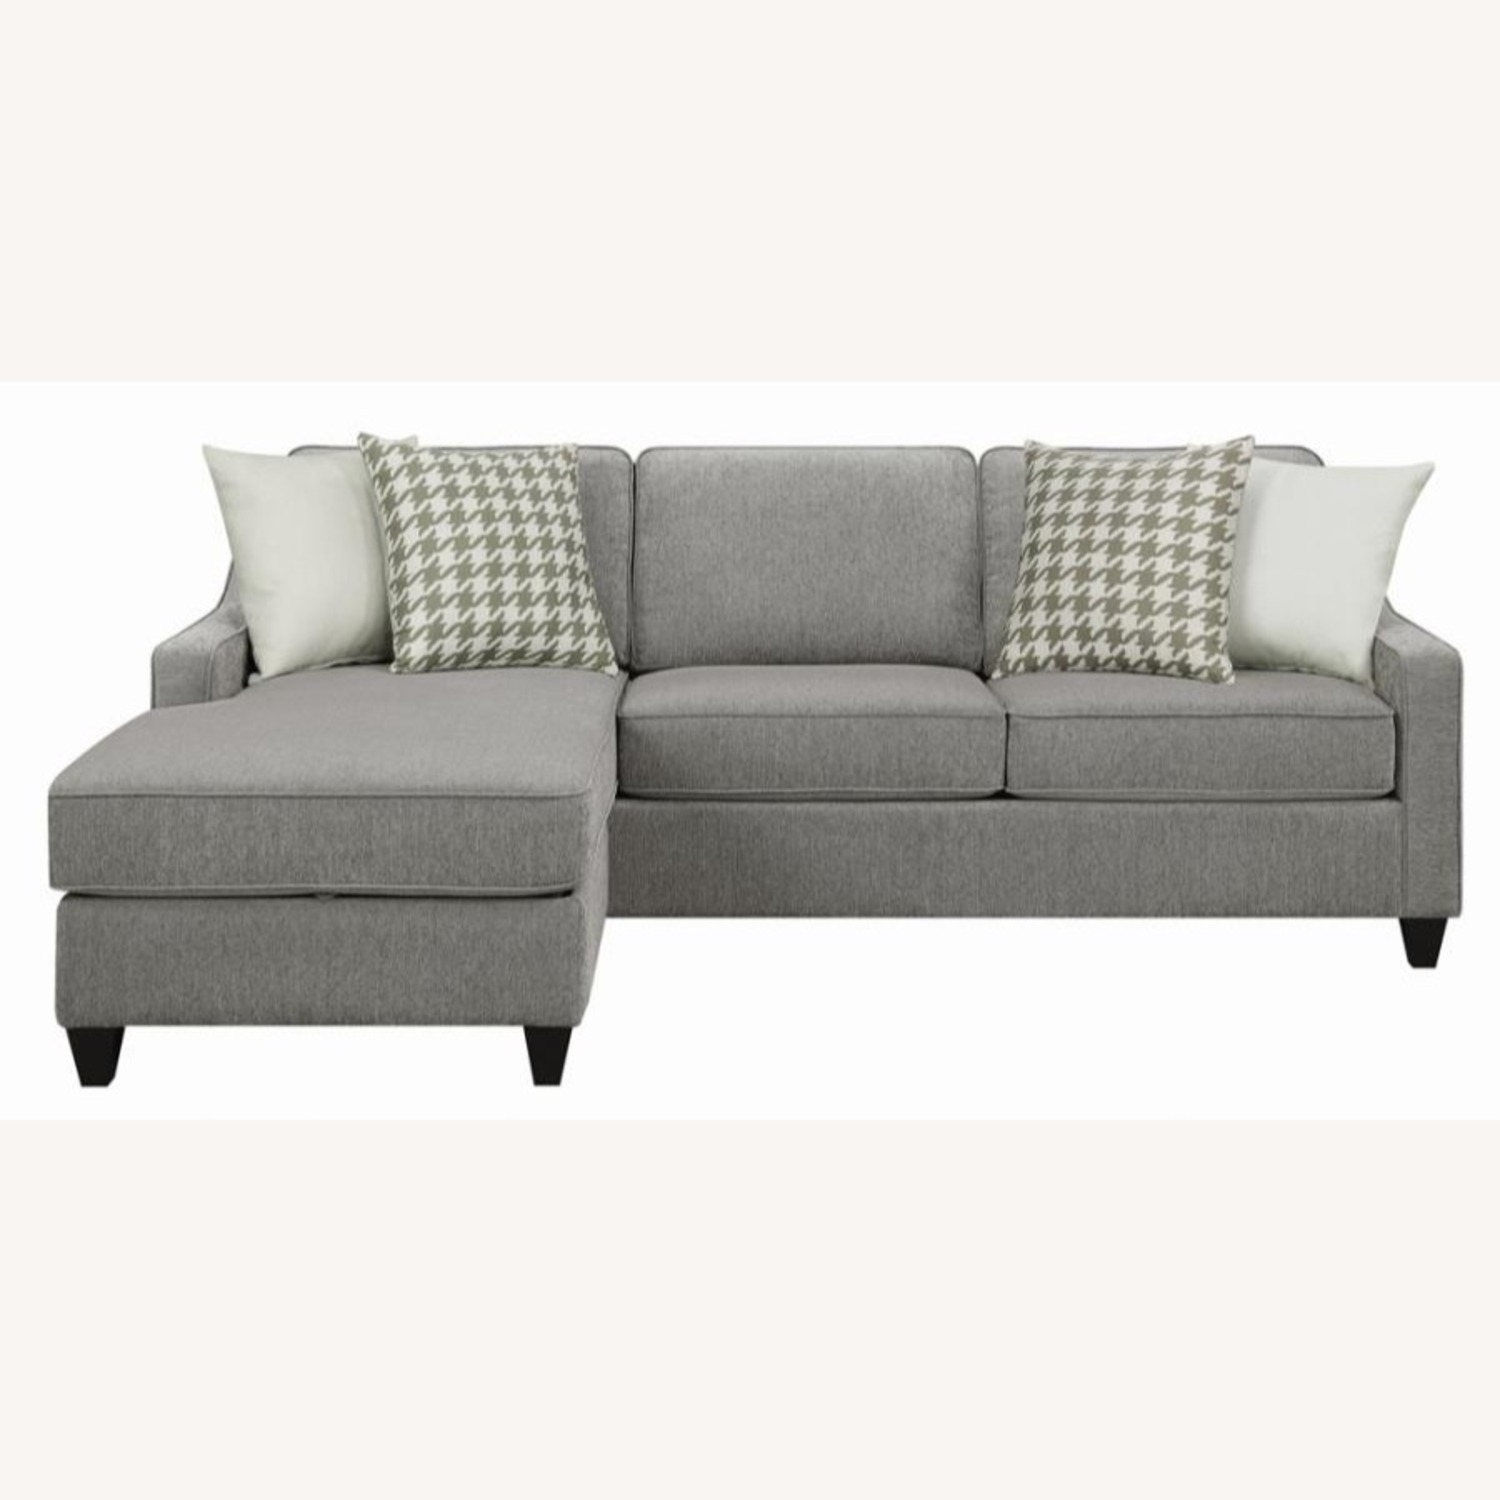 Sectional In Charcoal Chevron Dobby Upholstery - image-3